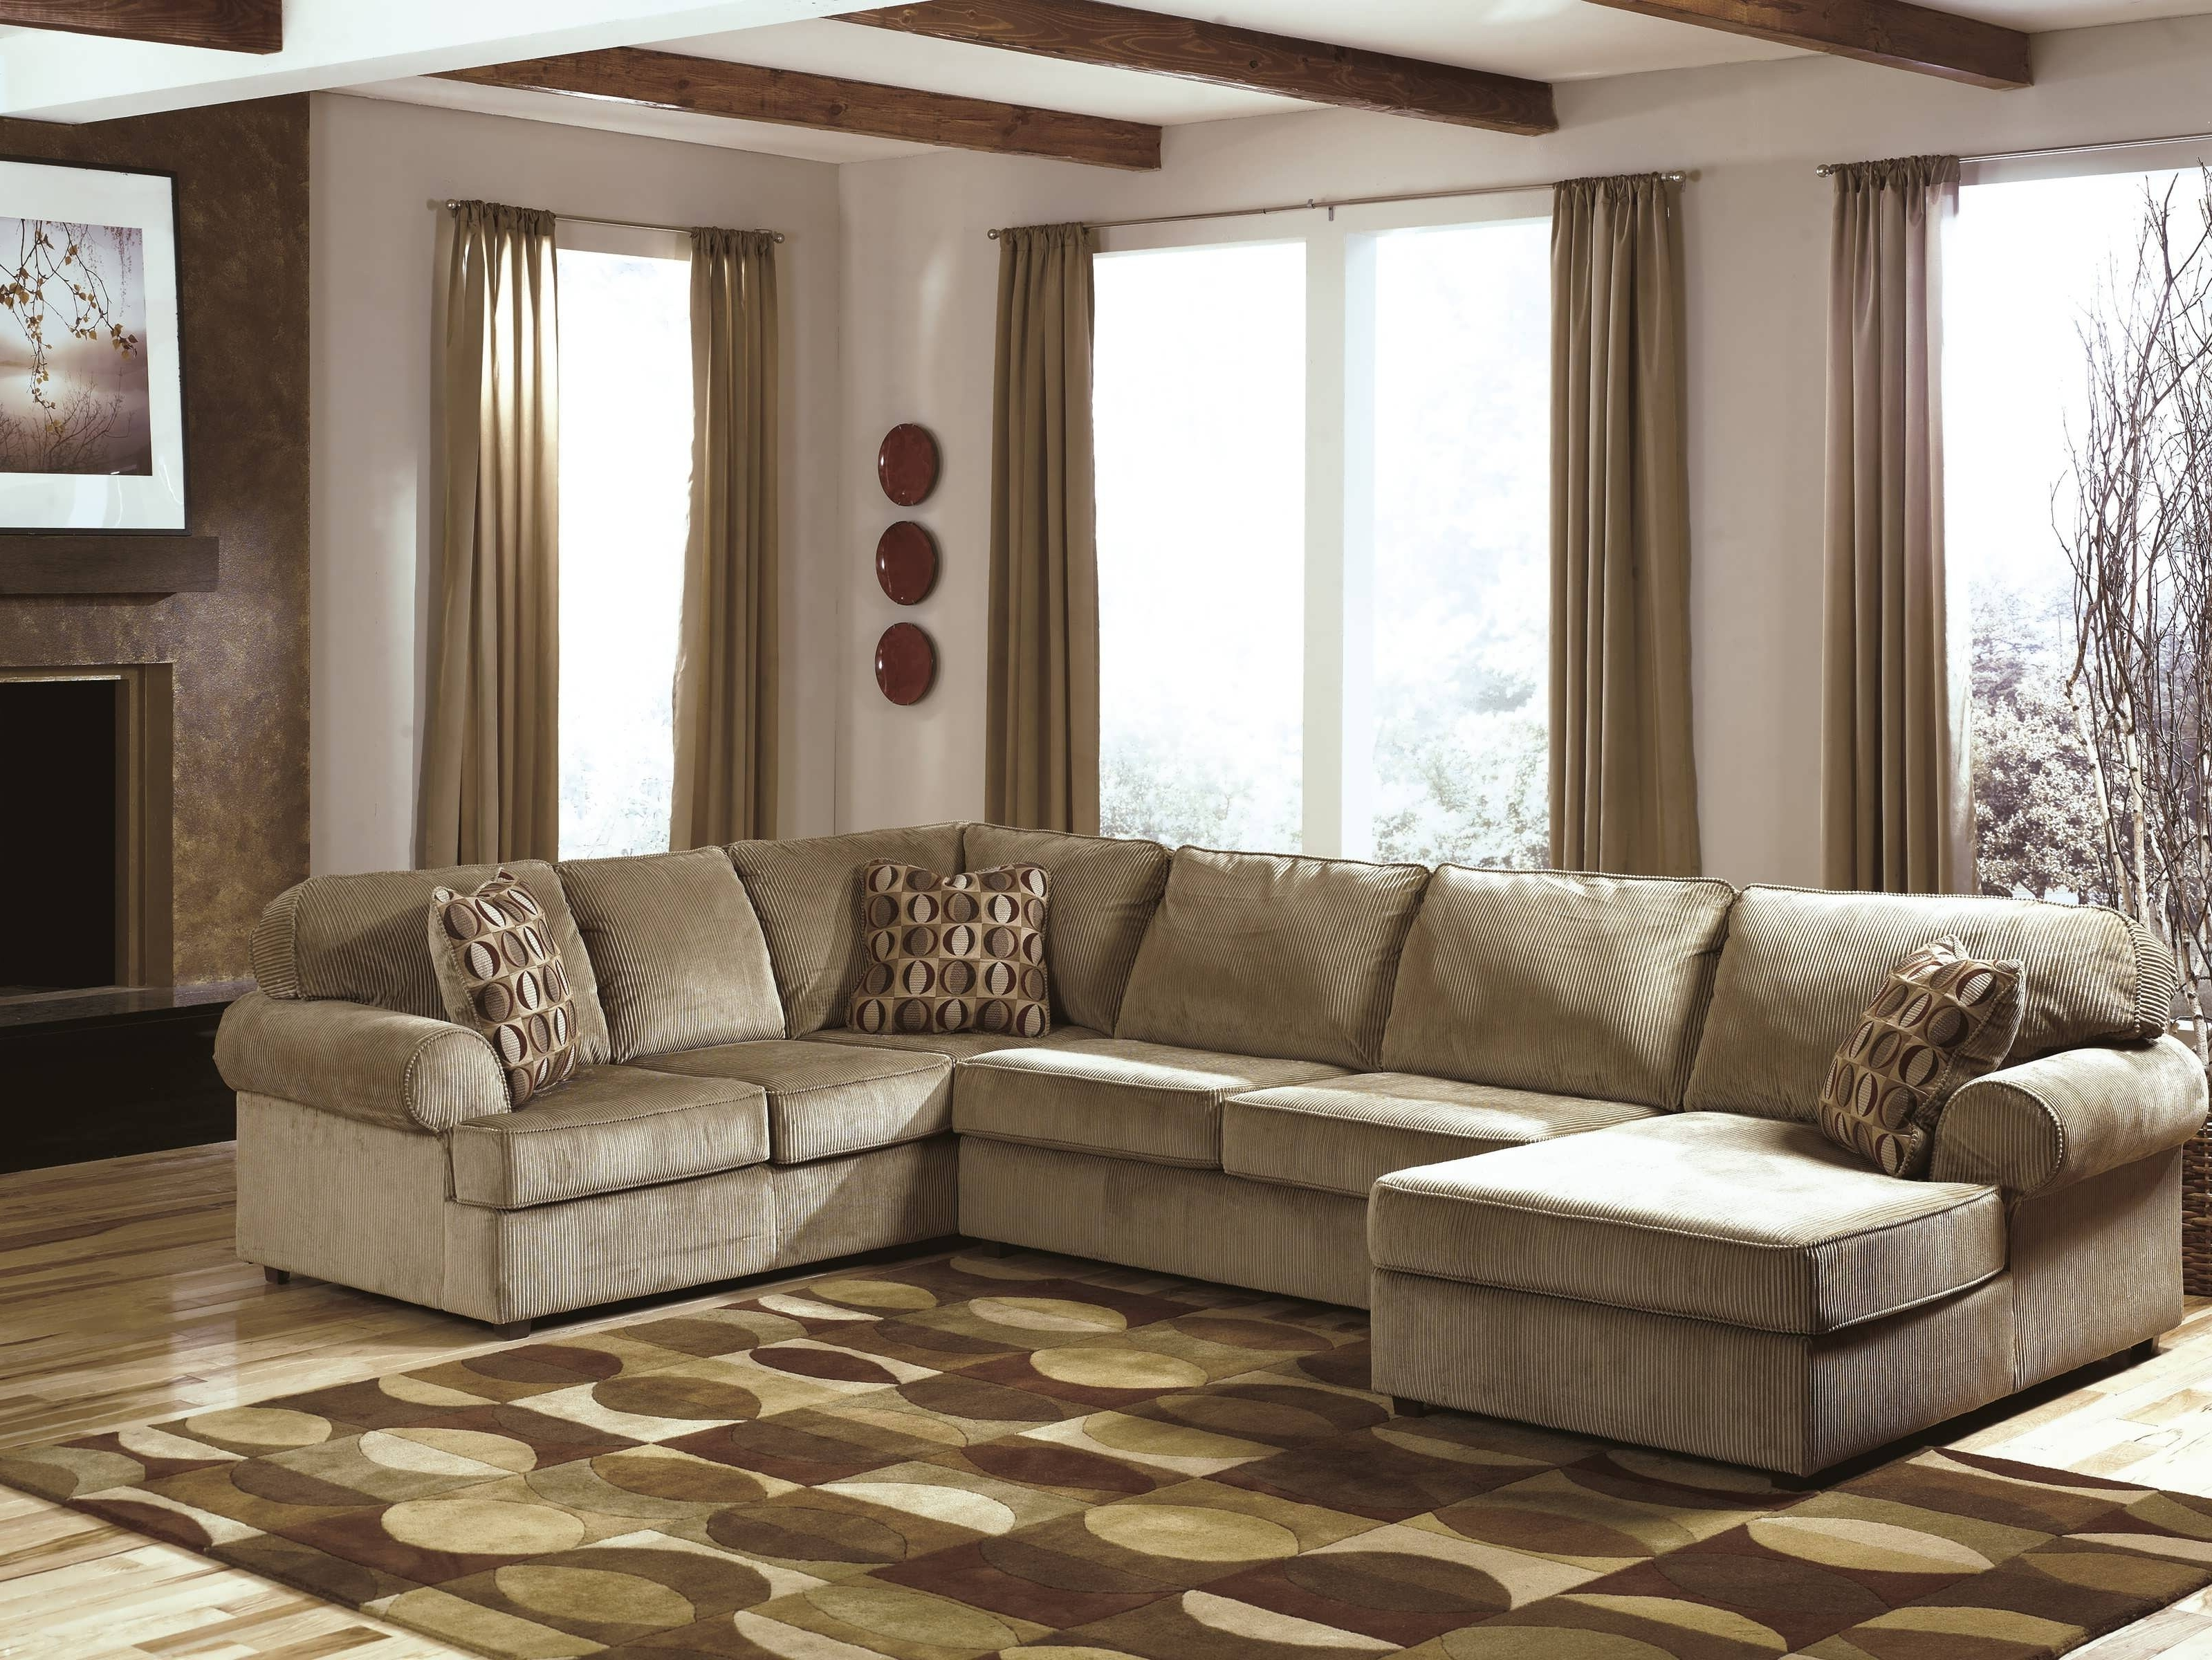 Trendy Sofa : Modular Sectional Sofa Reclining Sectional Couch Sectionals Intended For Double Chaise Sectionals (View 15 of 15)